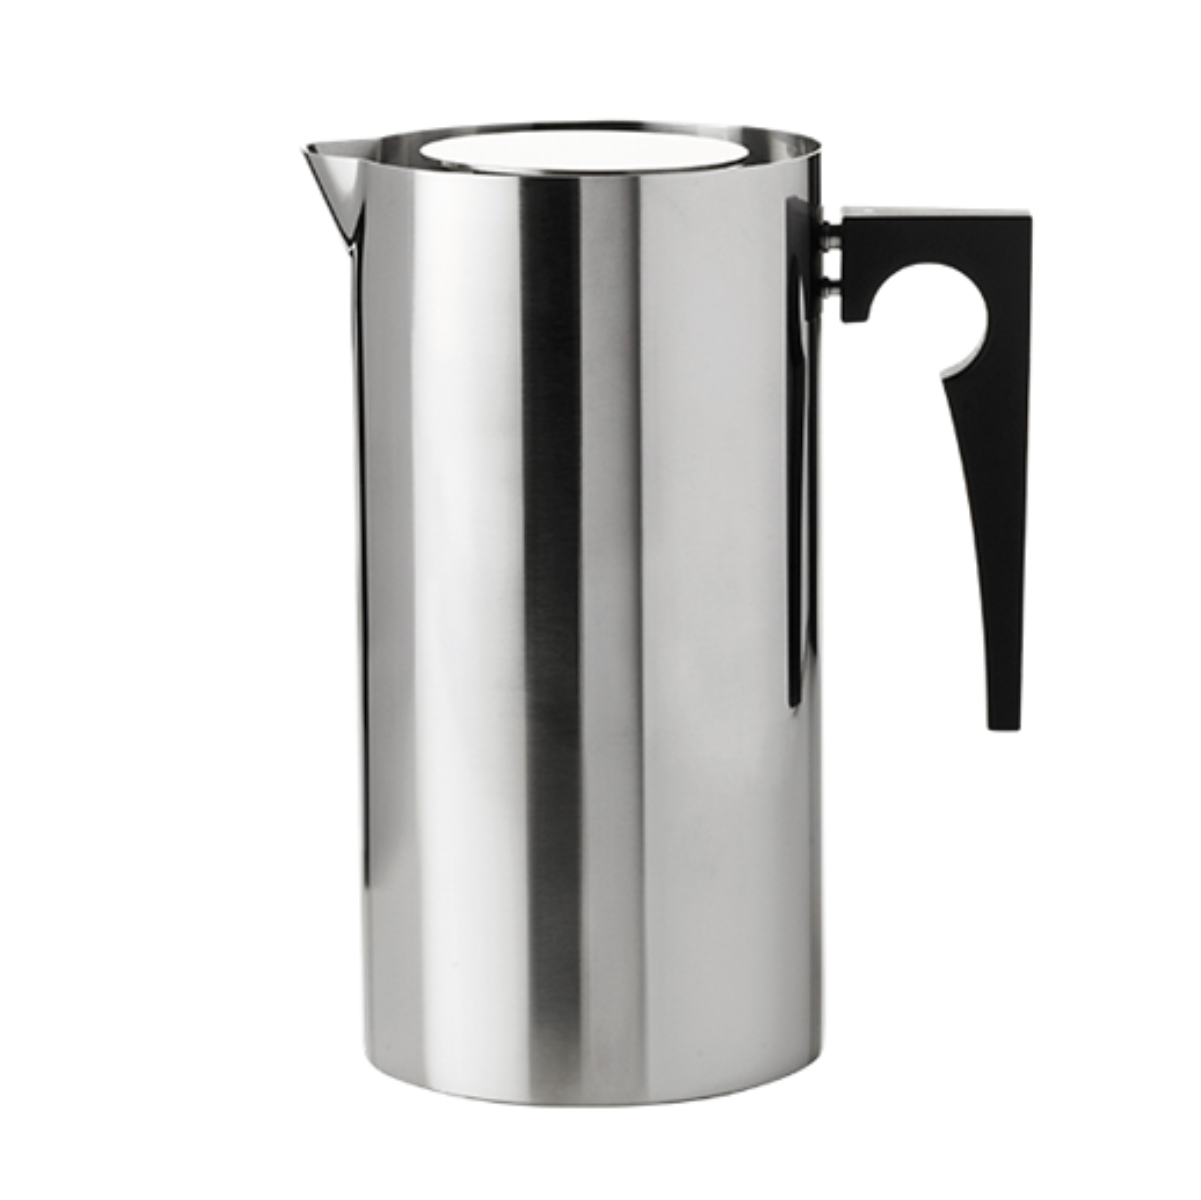 Stelton Arne Jacobsen press coffee maker 1L